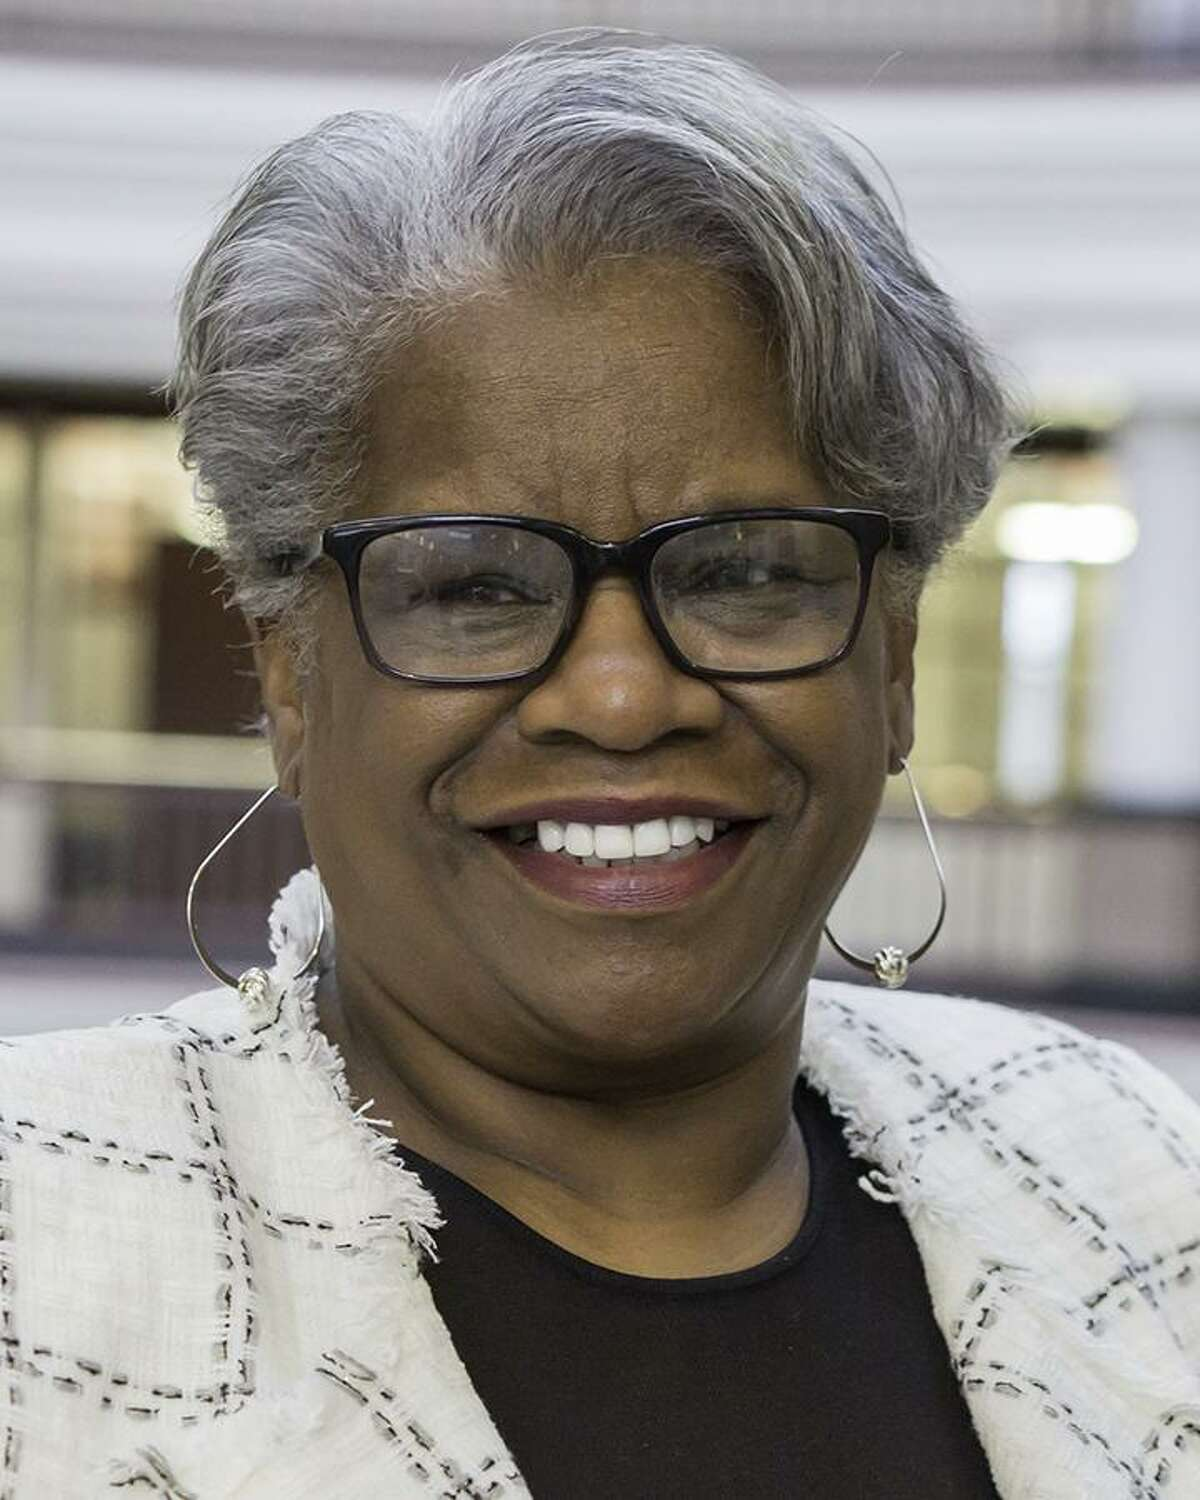 State Sen. Marilyn Moore, D-Bridgeport, said Wednesday that a visit in Bridgeport earlier in the week with former Wall Street banker David Lehman, convinced her that he is the right candidate to become the next commissioner of the state Department of Economic and Community Development.